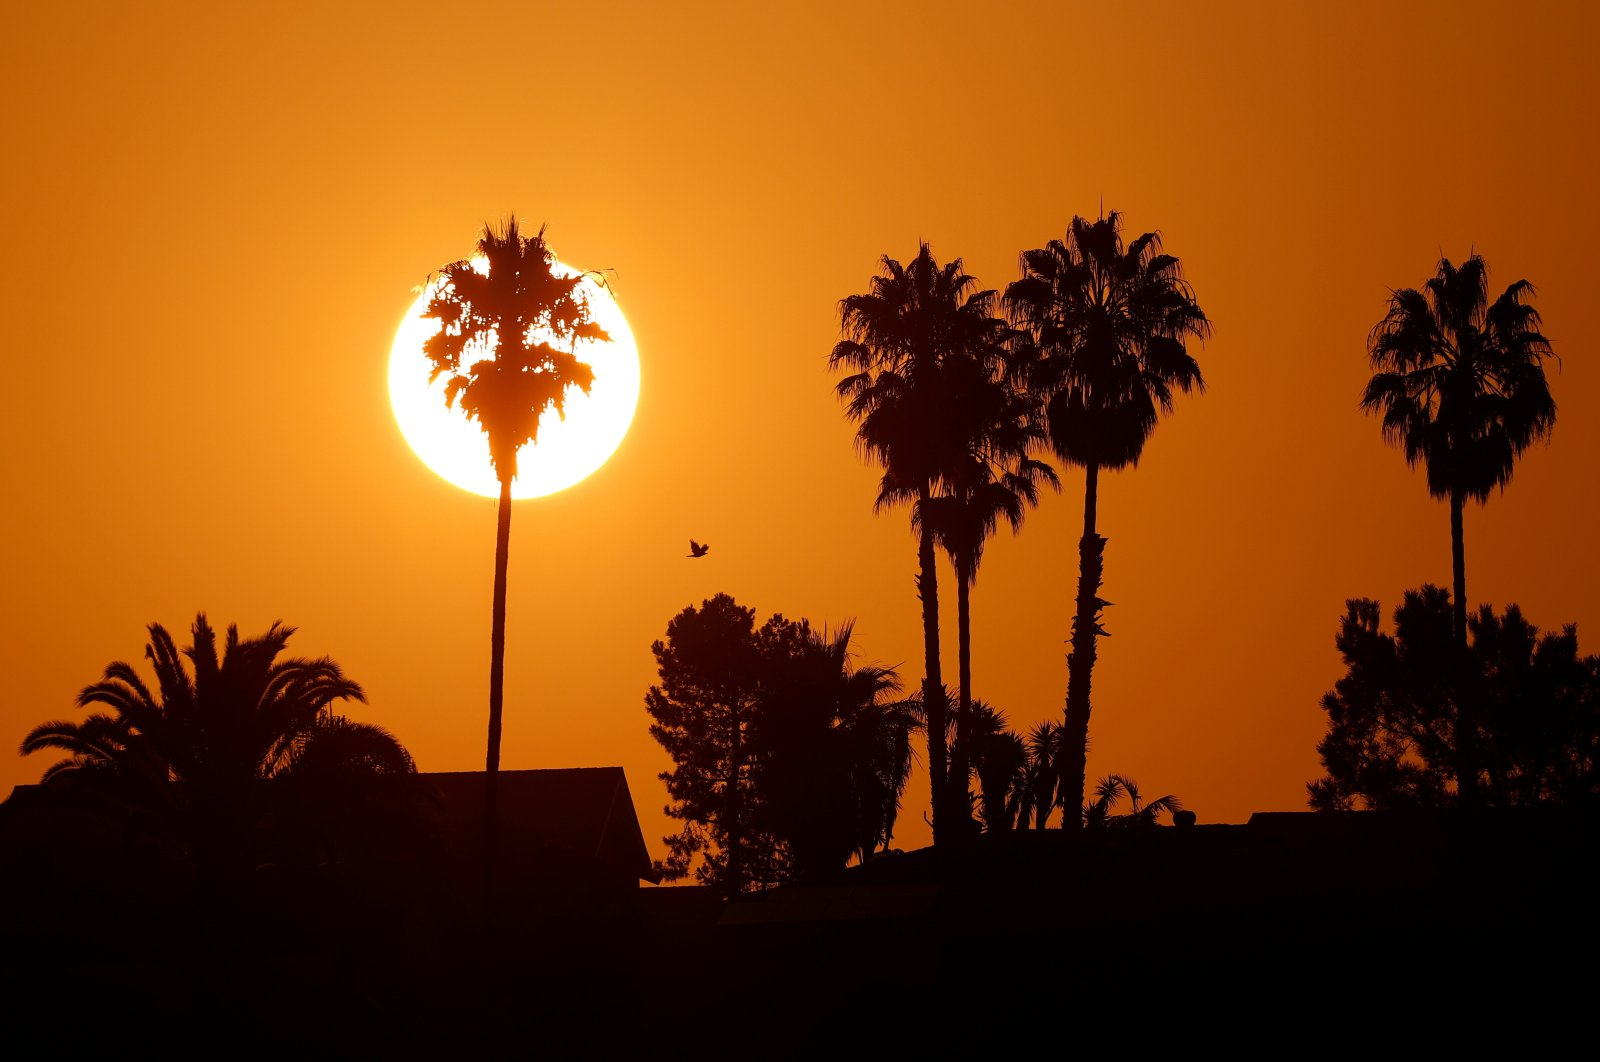 The morning sun rises over a neighborhood as a heatwave continues during the COVID-19 outbreak in Encinitas, California, U.S., Aug. 19, 2020. (Reuters Photo)